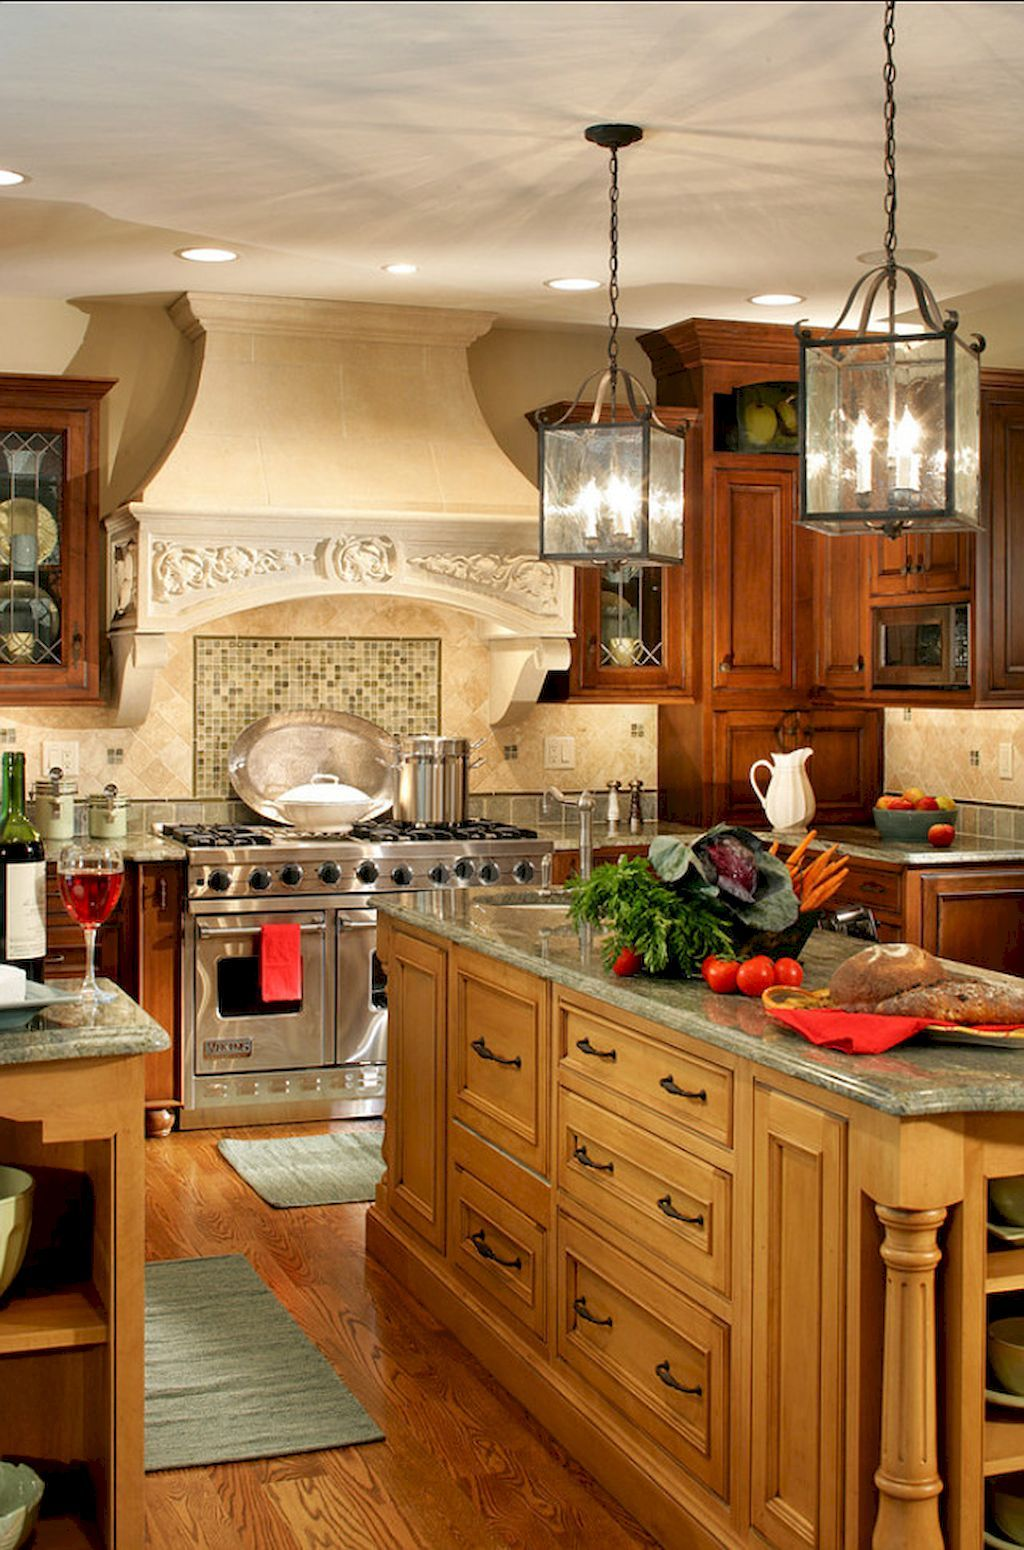 French country kitchen style are looks both elegant and homey feel